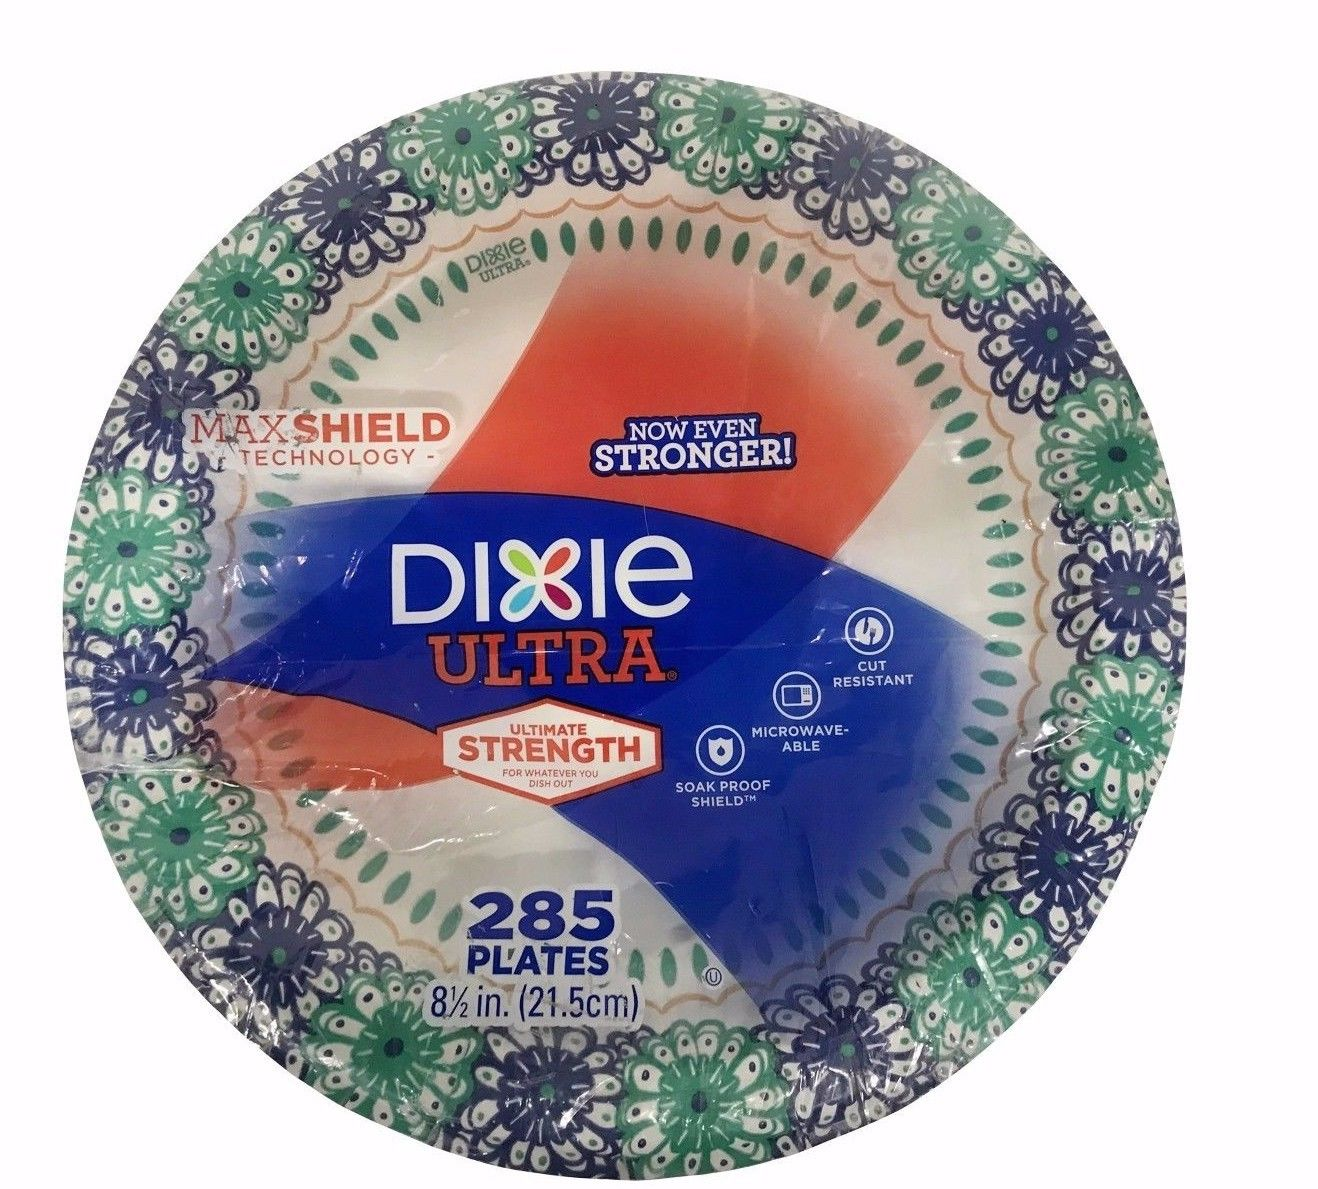 Dixie Ultra 8.5 Inch Max Shield Paper Plates Strong \u0026 Cut-Resistant 285 Ct  sc 1 st  Gainmart Premium & Dixie Ultra 8.5 Inch Max Shield Paper Plates Strong \u0026 Cut-Resistant ...